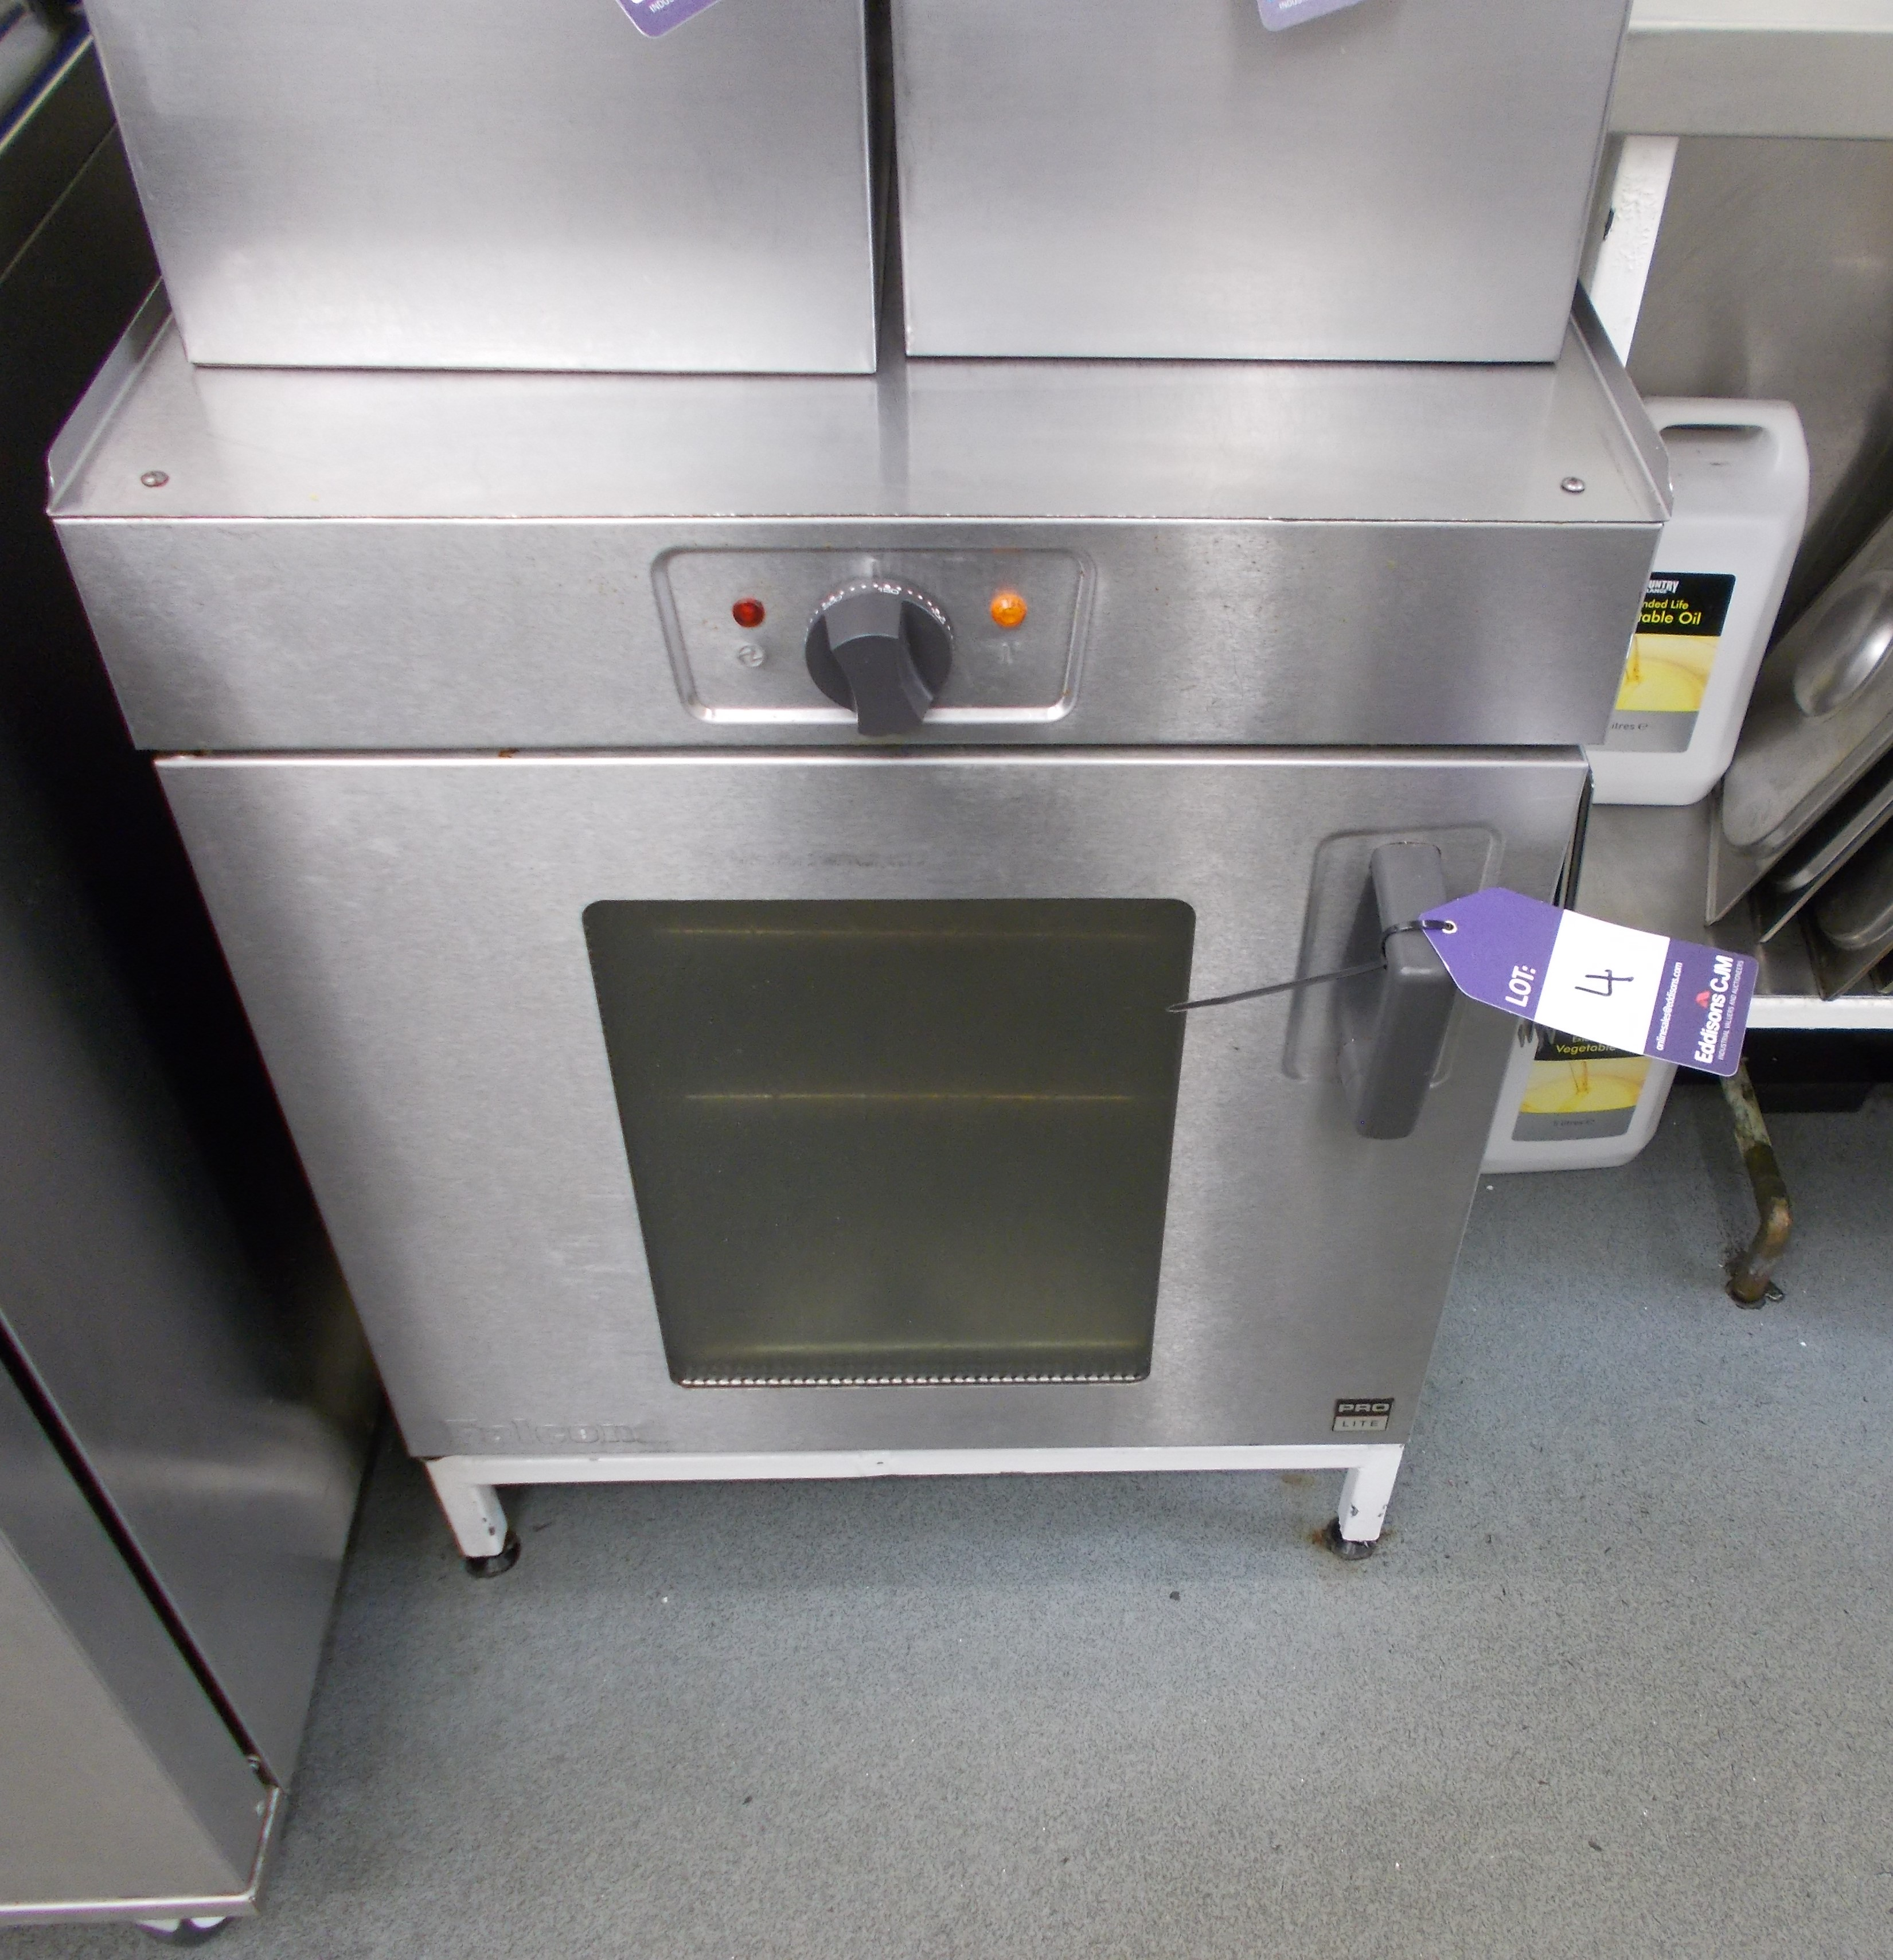 Falcon Pro Lite electric oven. Dimensions: 2ft x 2ft x 2ft 10